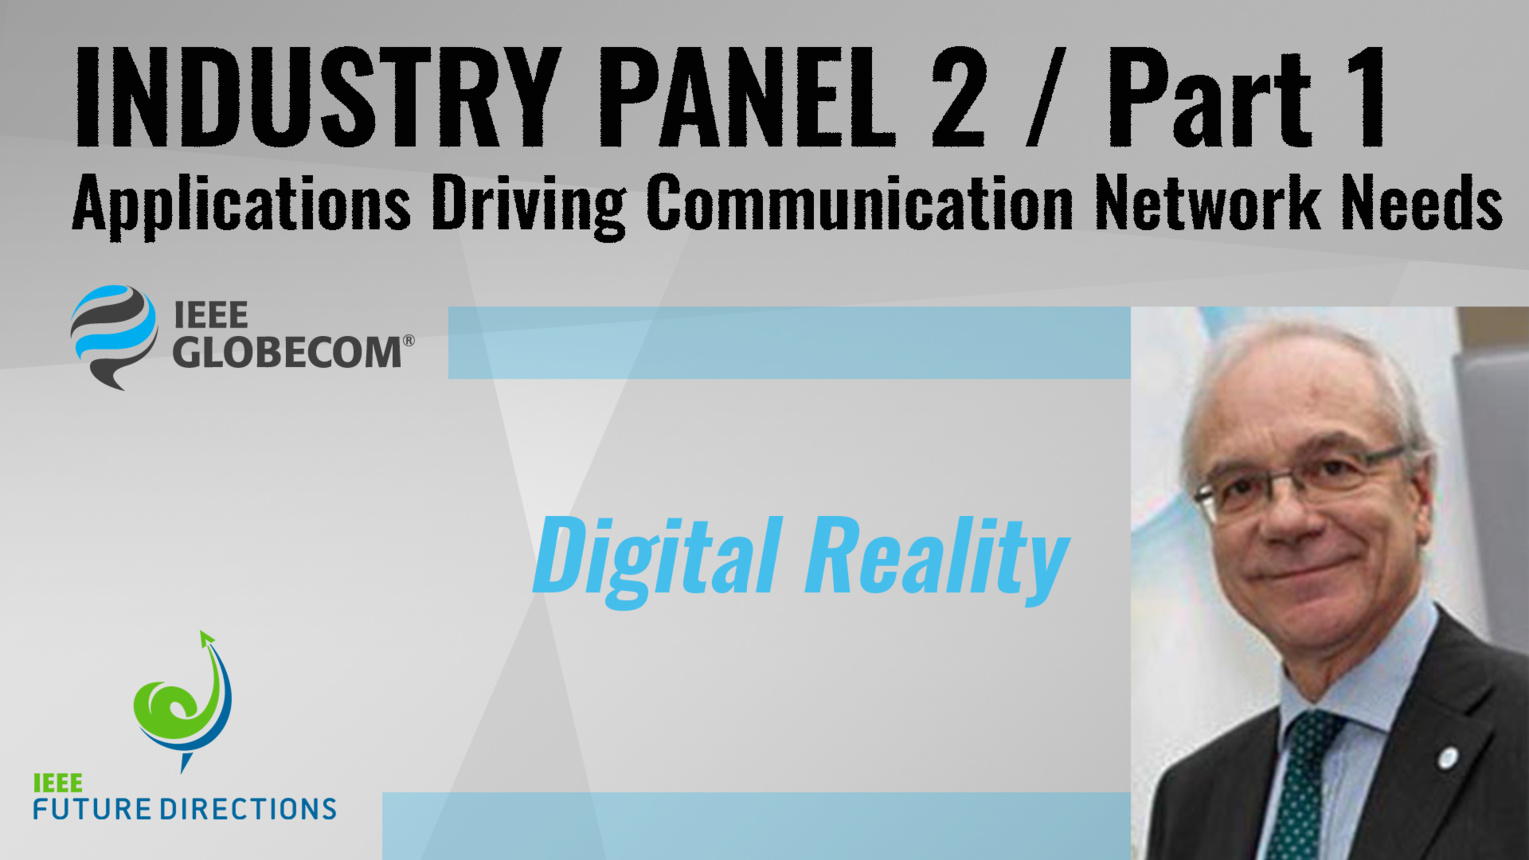 Pt. 1: Digital Reality - Roberto Saracco - Industry Panel 2, IEEE Globecom, 2019